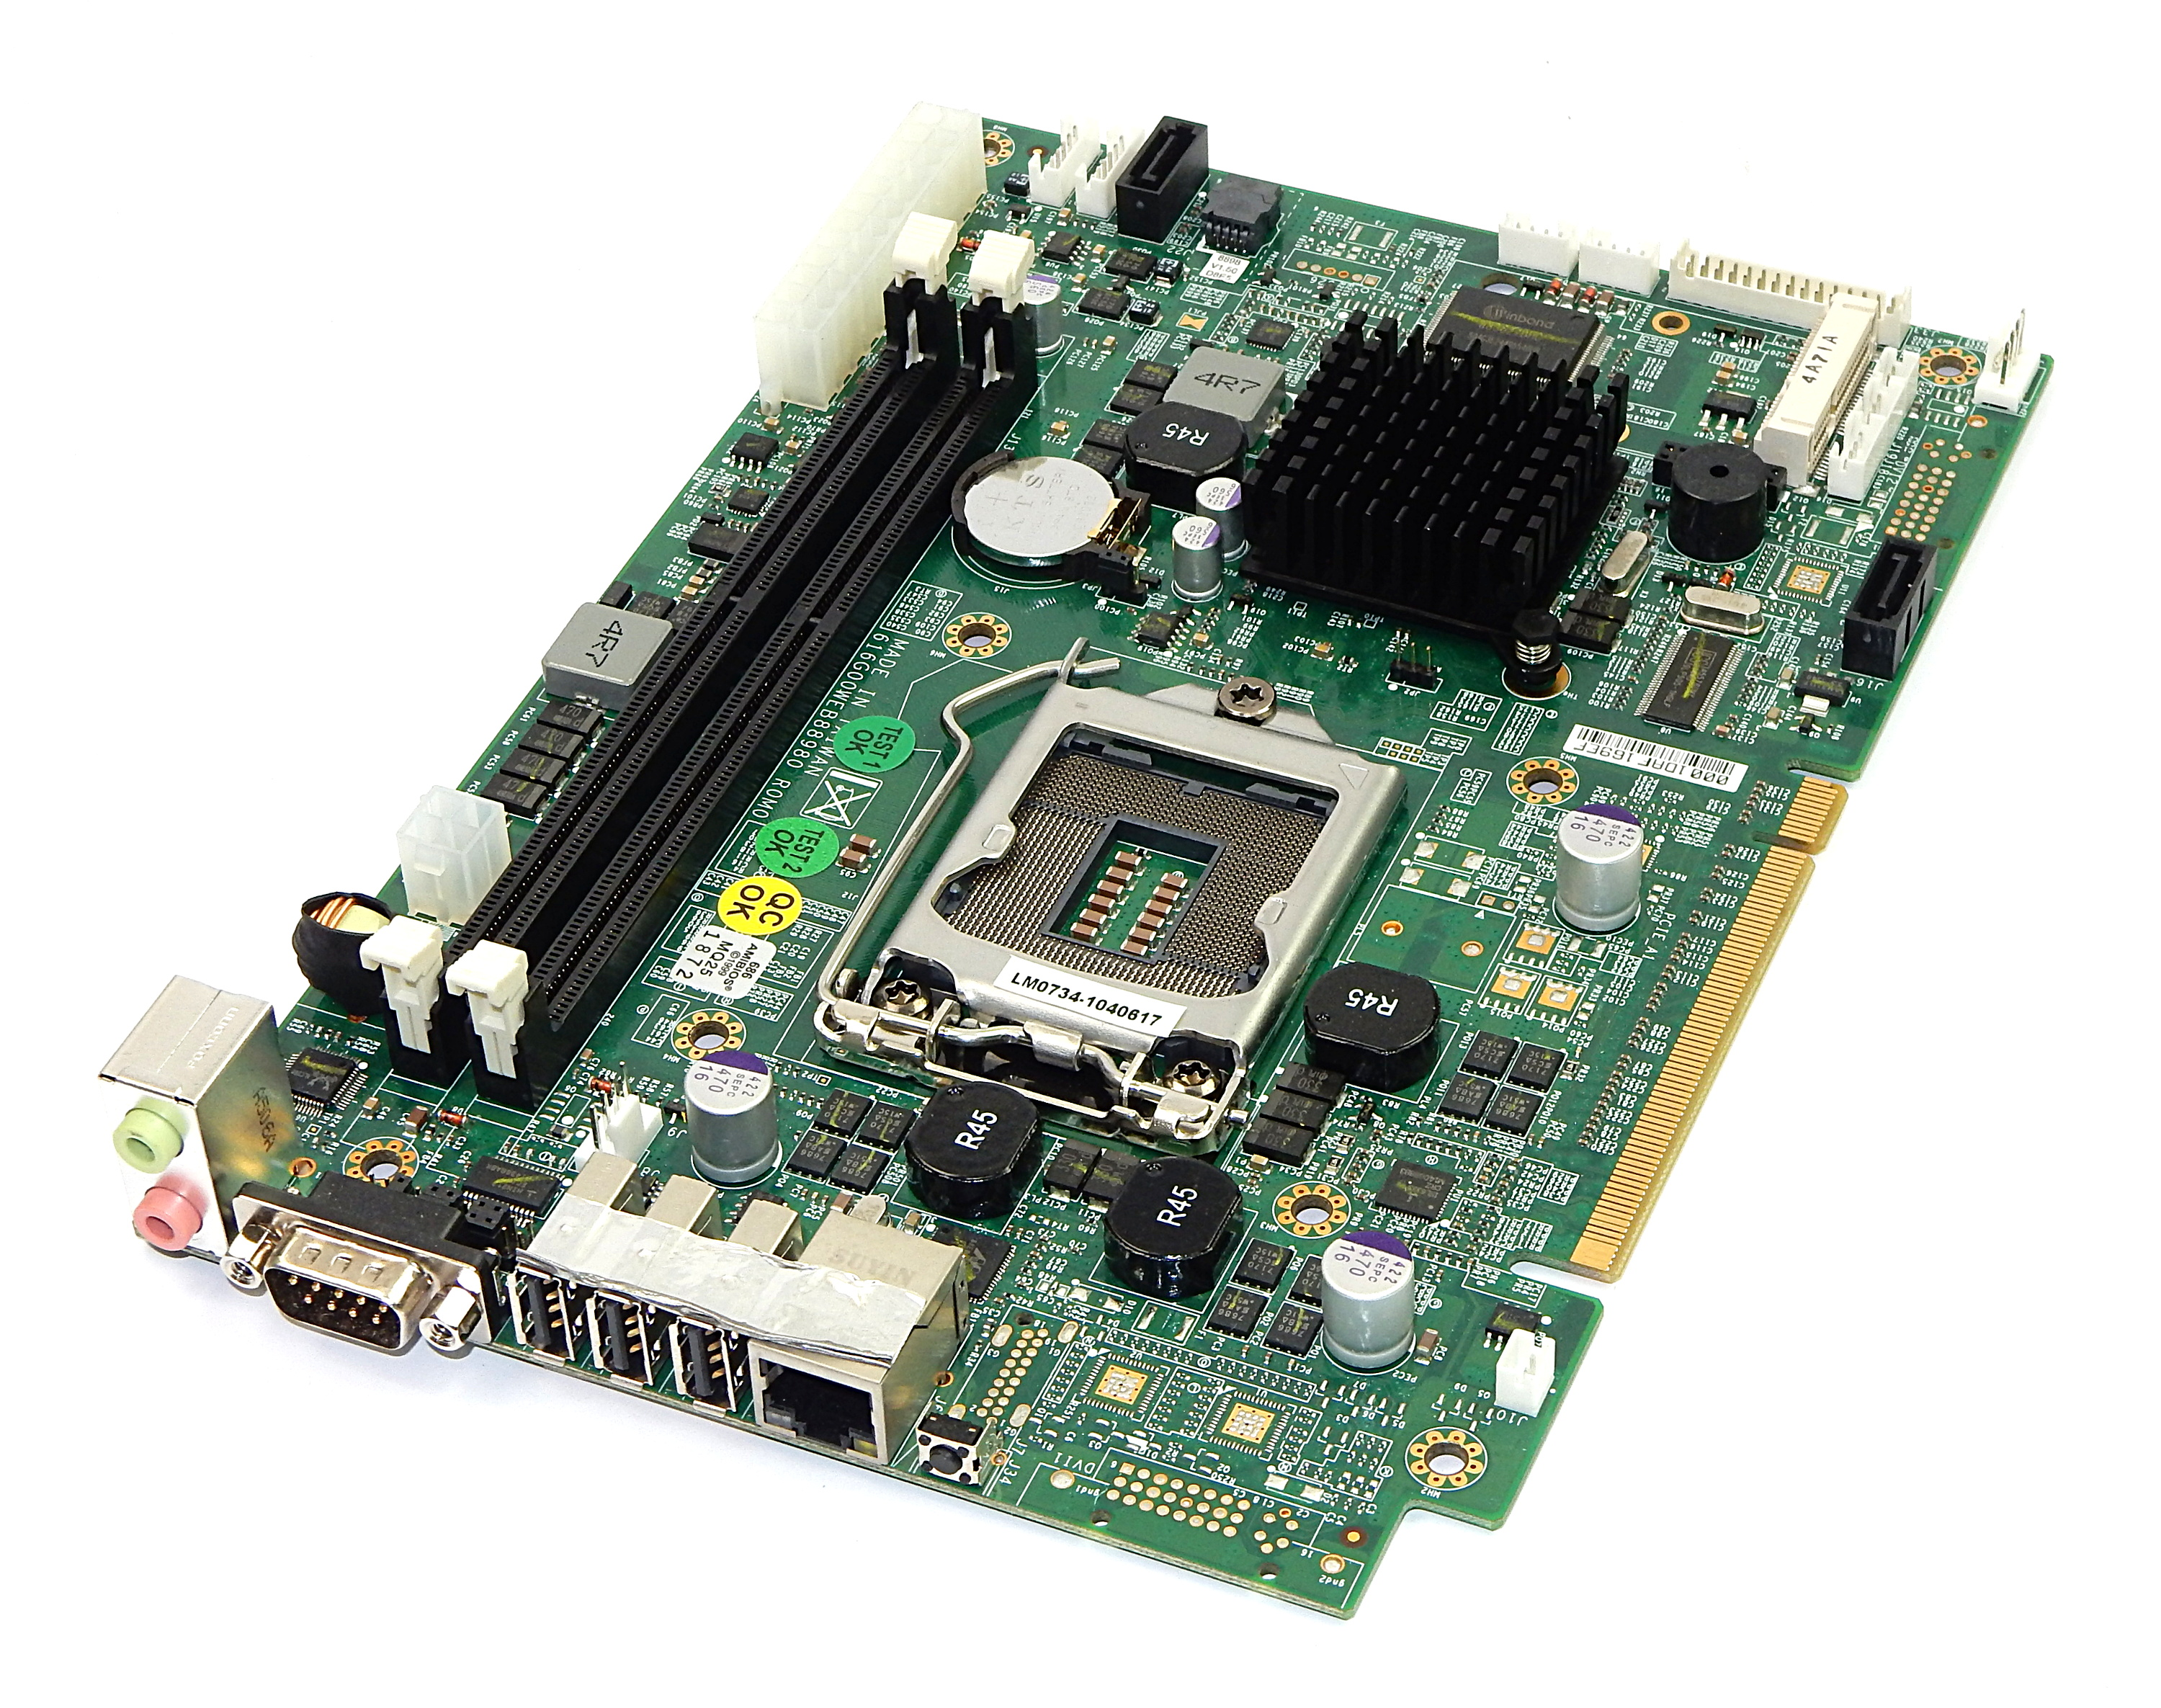 WEB-8898 R0M0E LGA1156 Motherboard for RMG Newtworks IVS SDA-930 PC Player